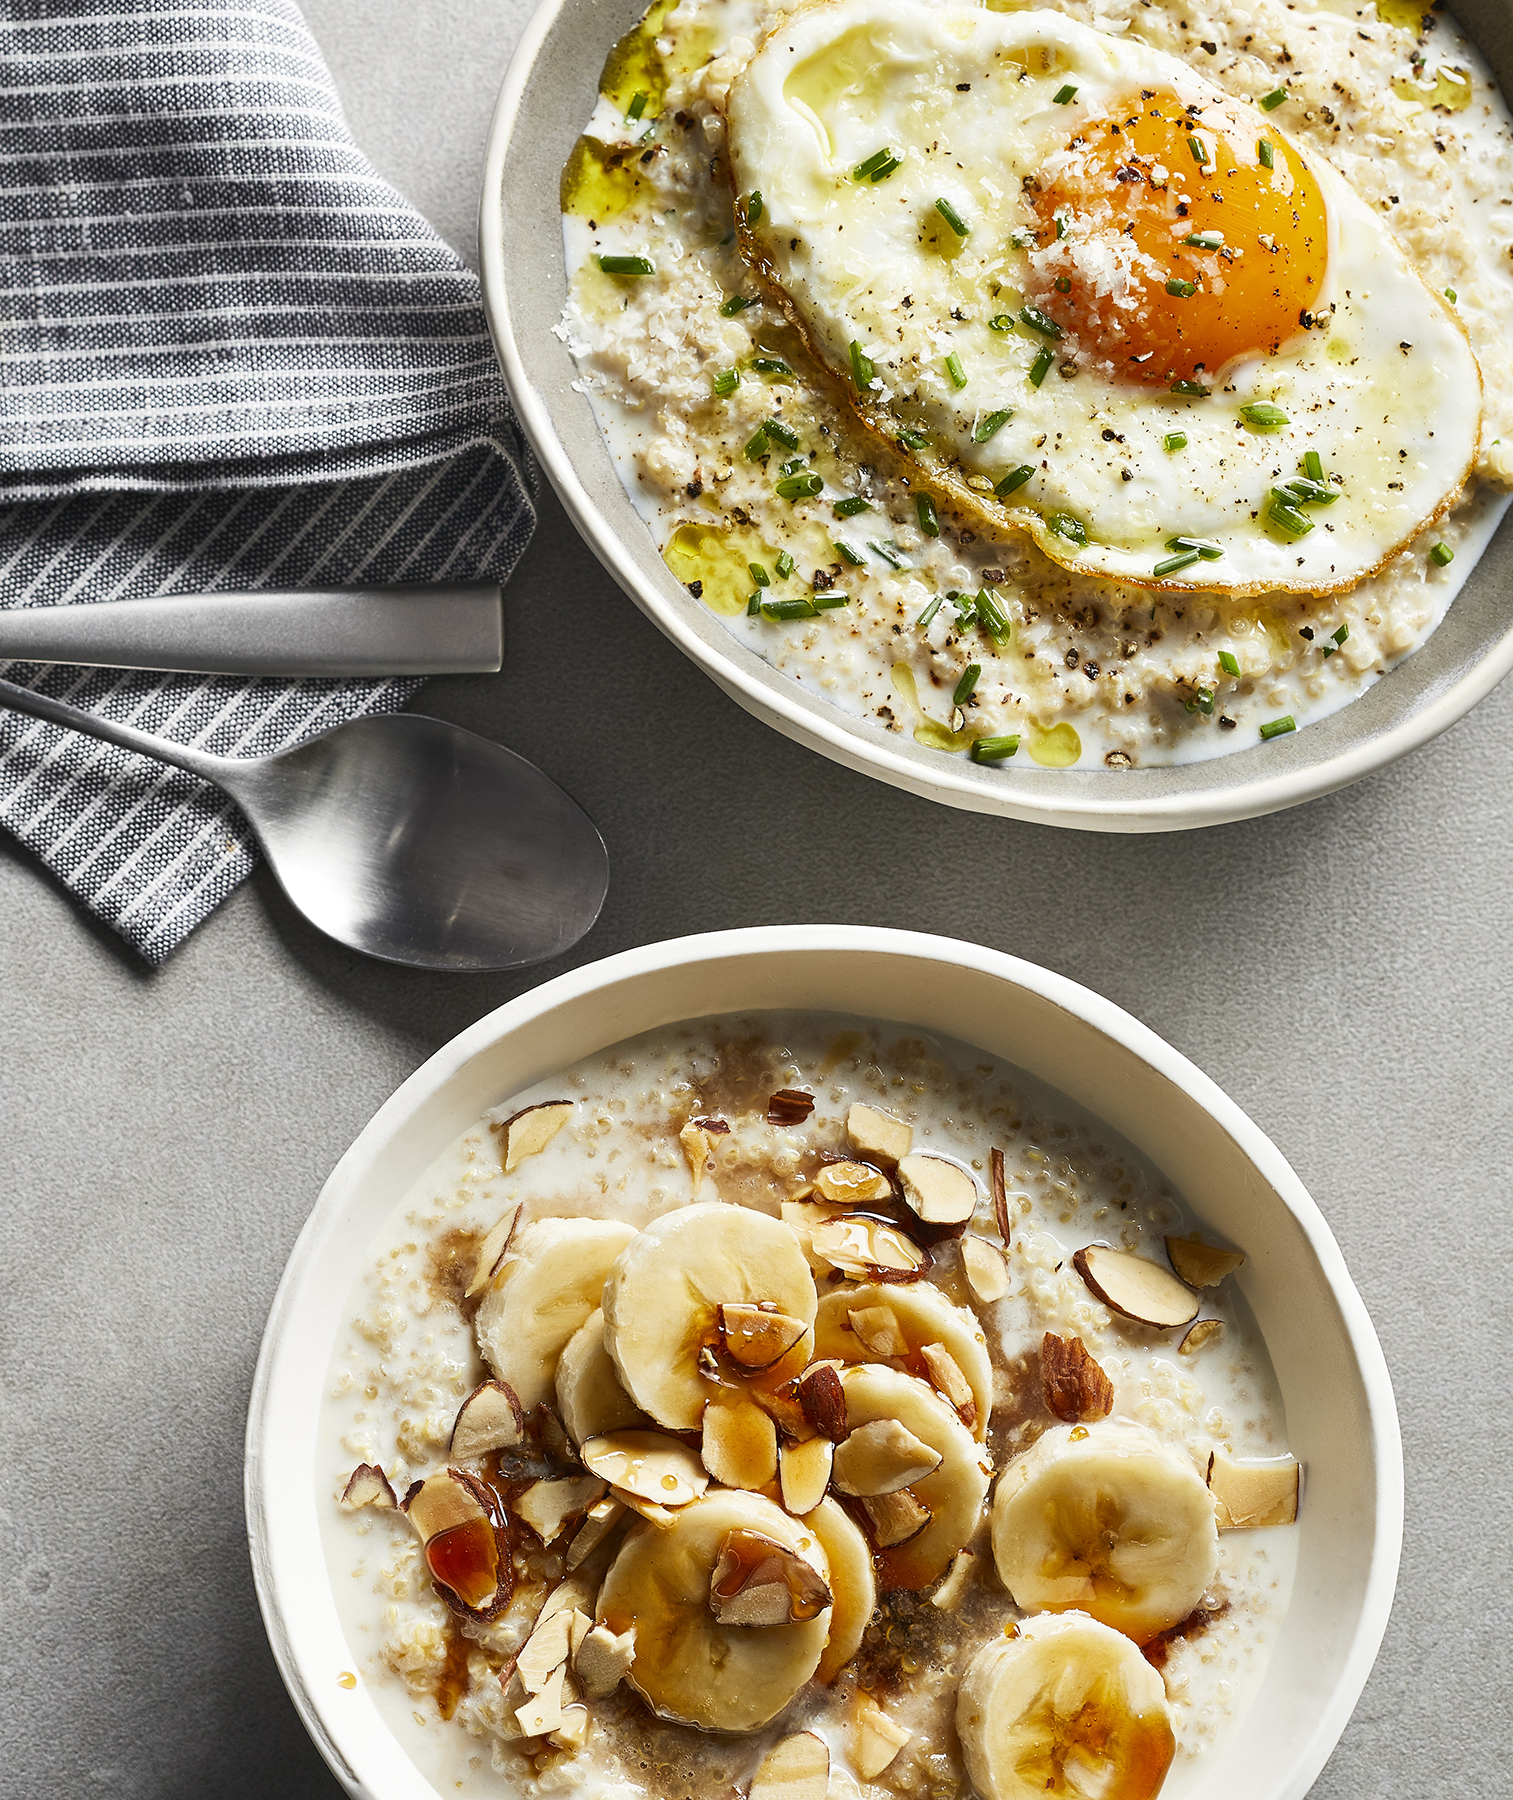 6 Recipes for Every Food-Related Resolution